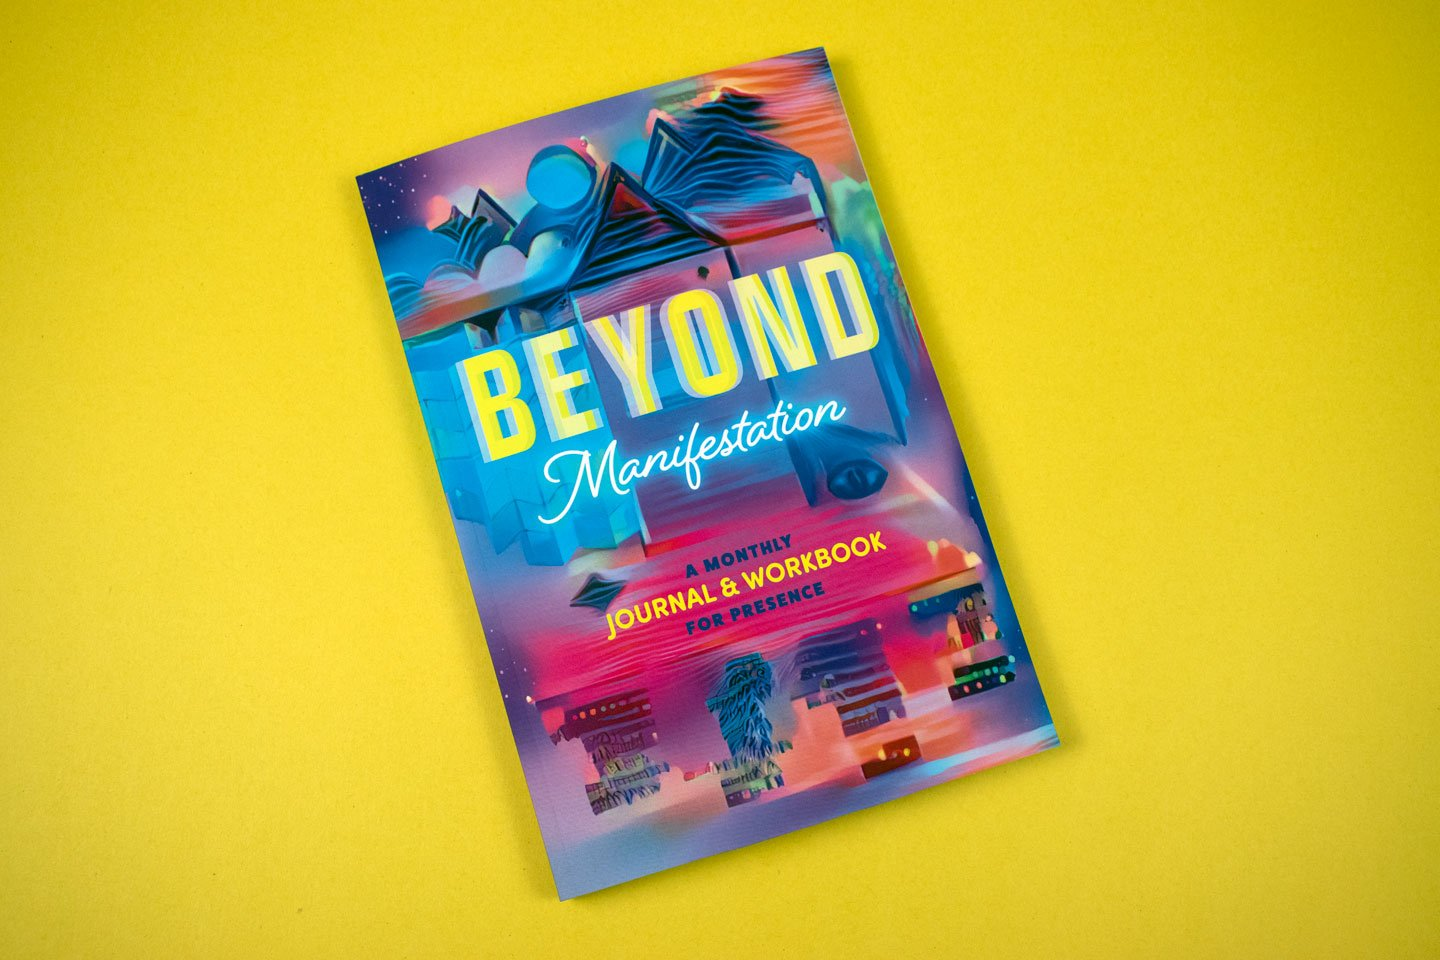 Beyond Manifestation Journal